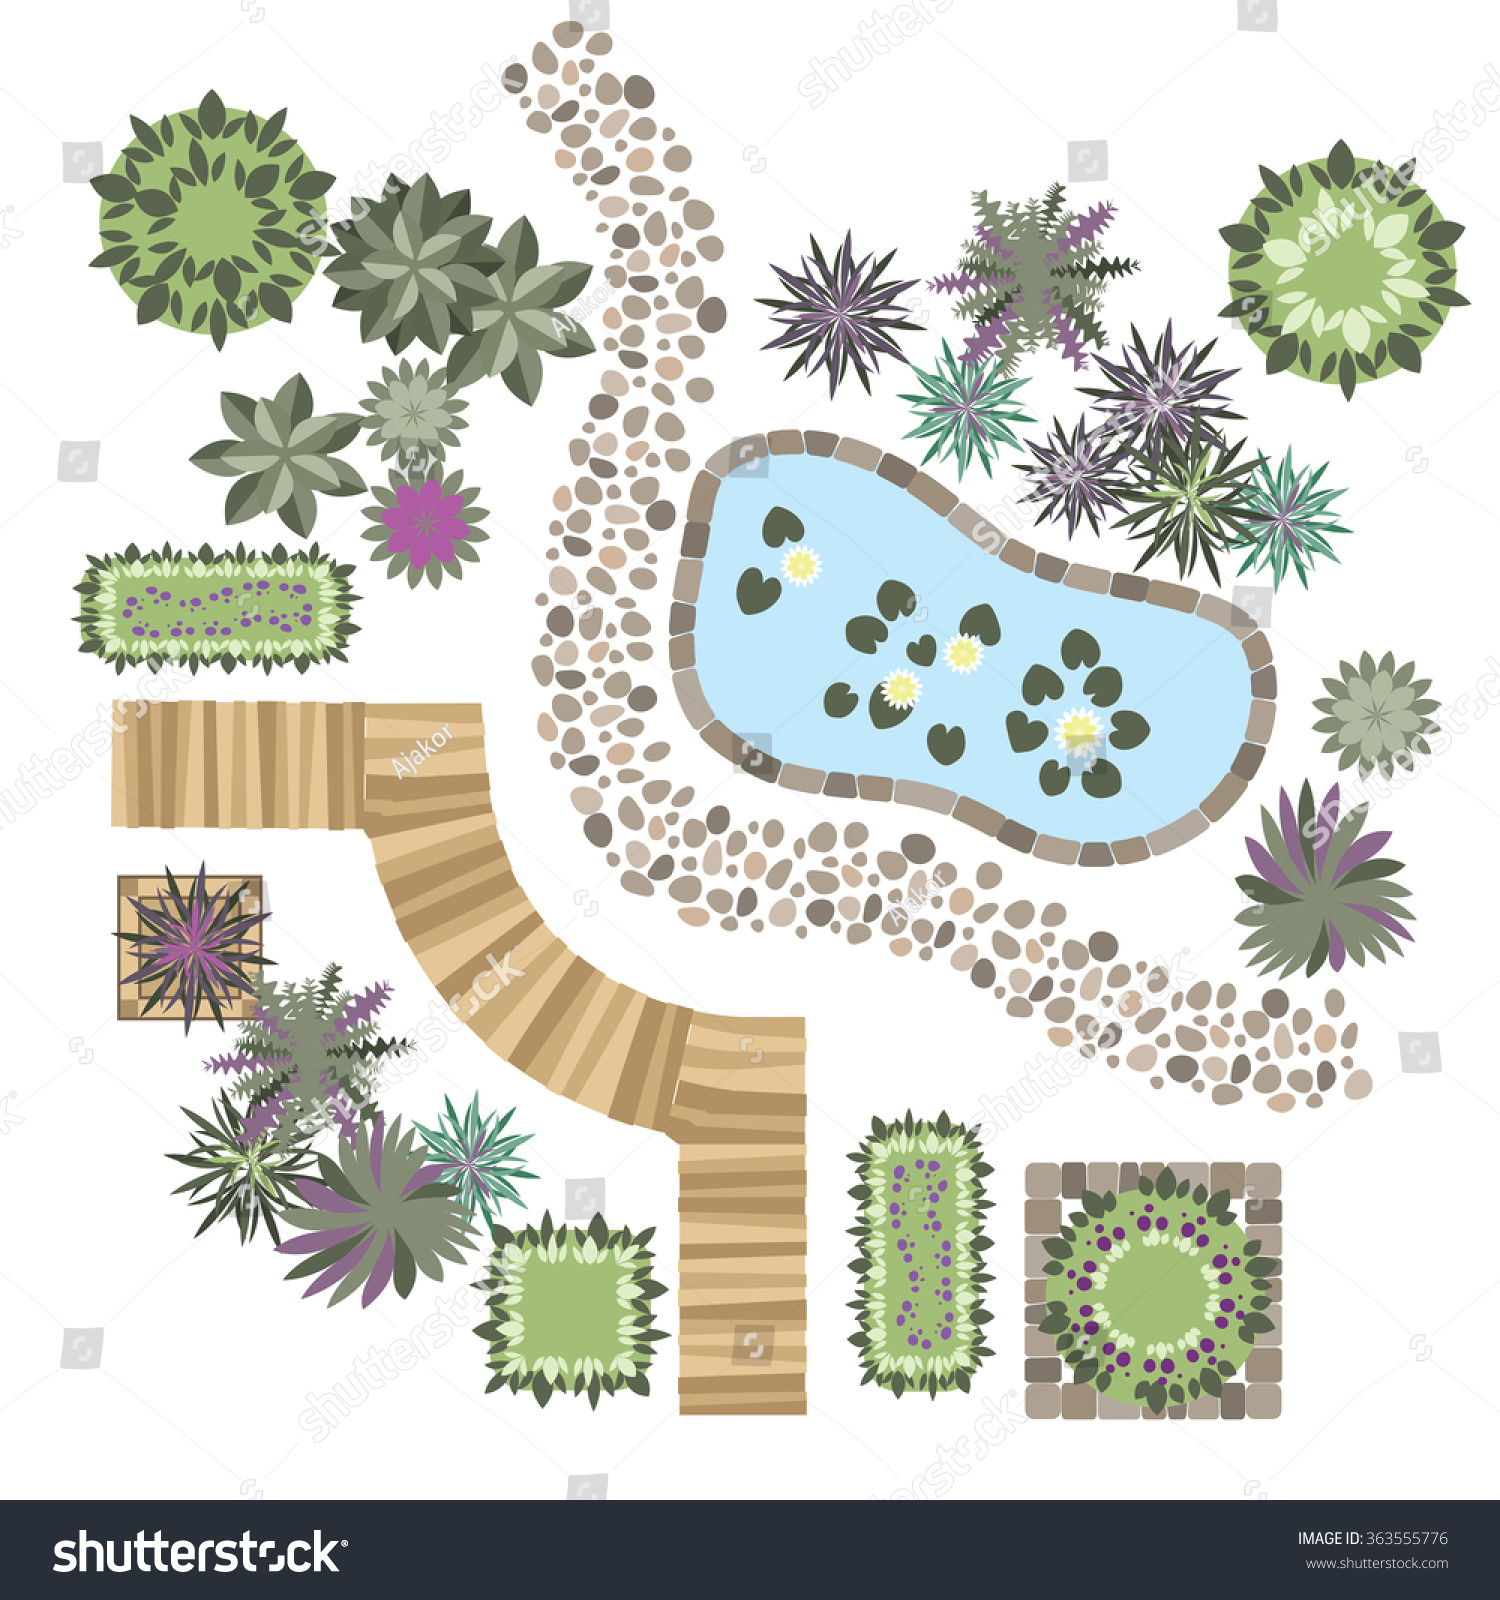 Set vector elements landscape design different stock for Landscape design paper